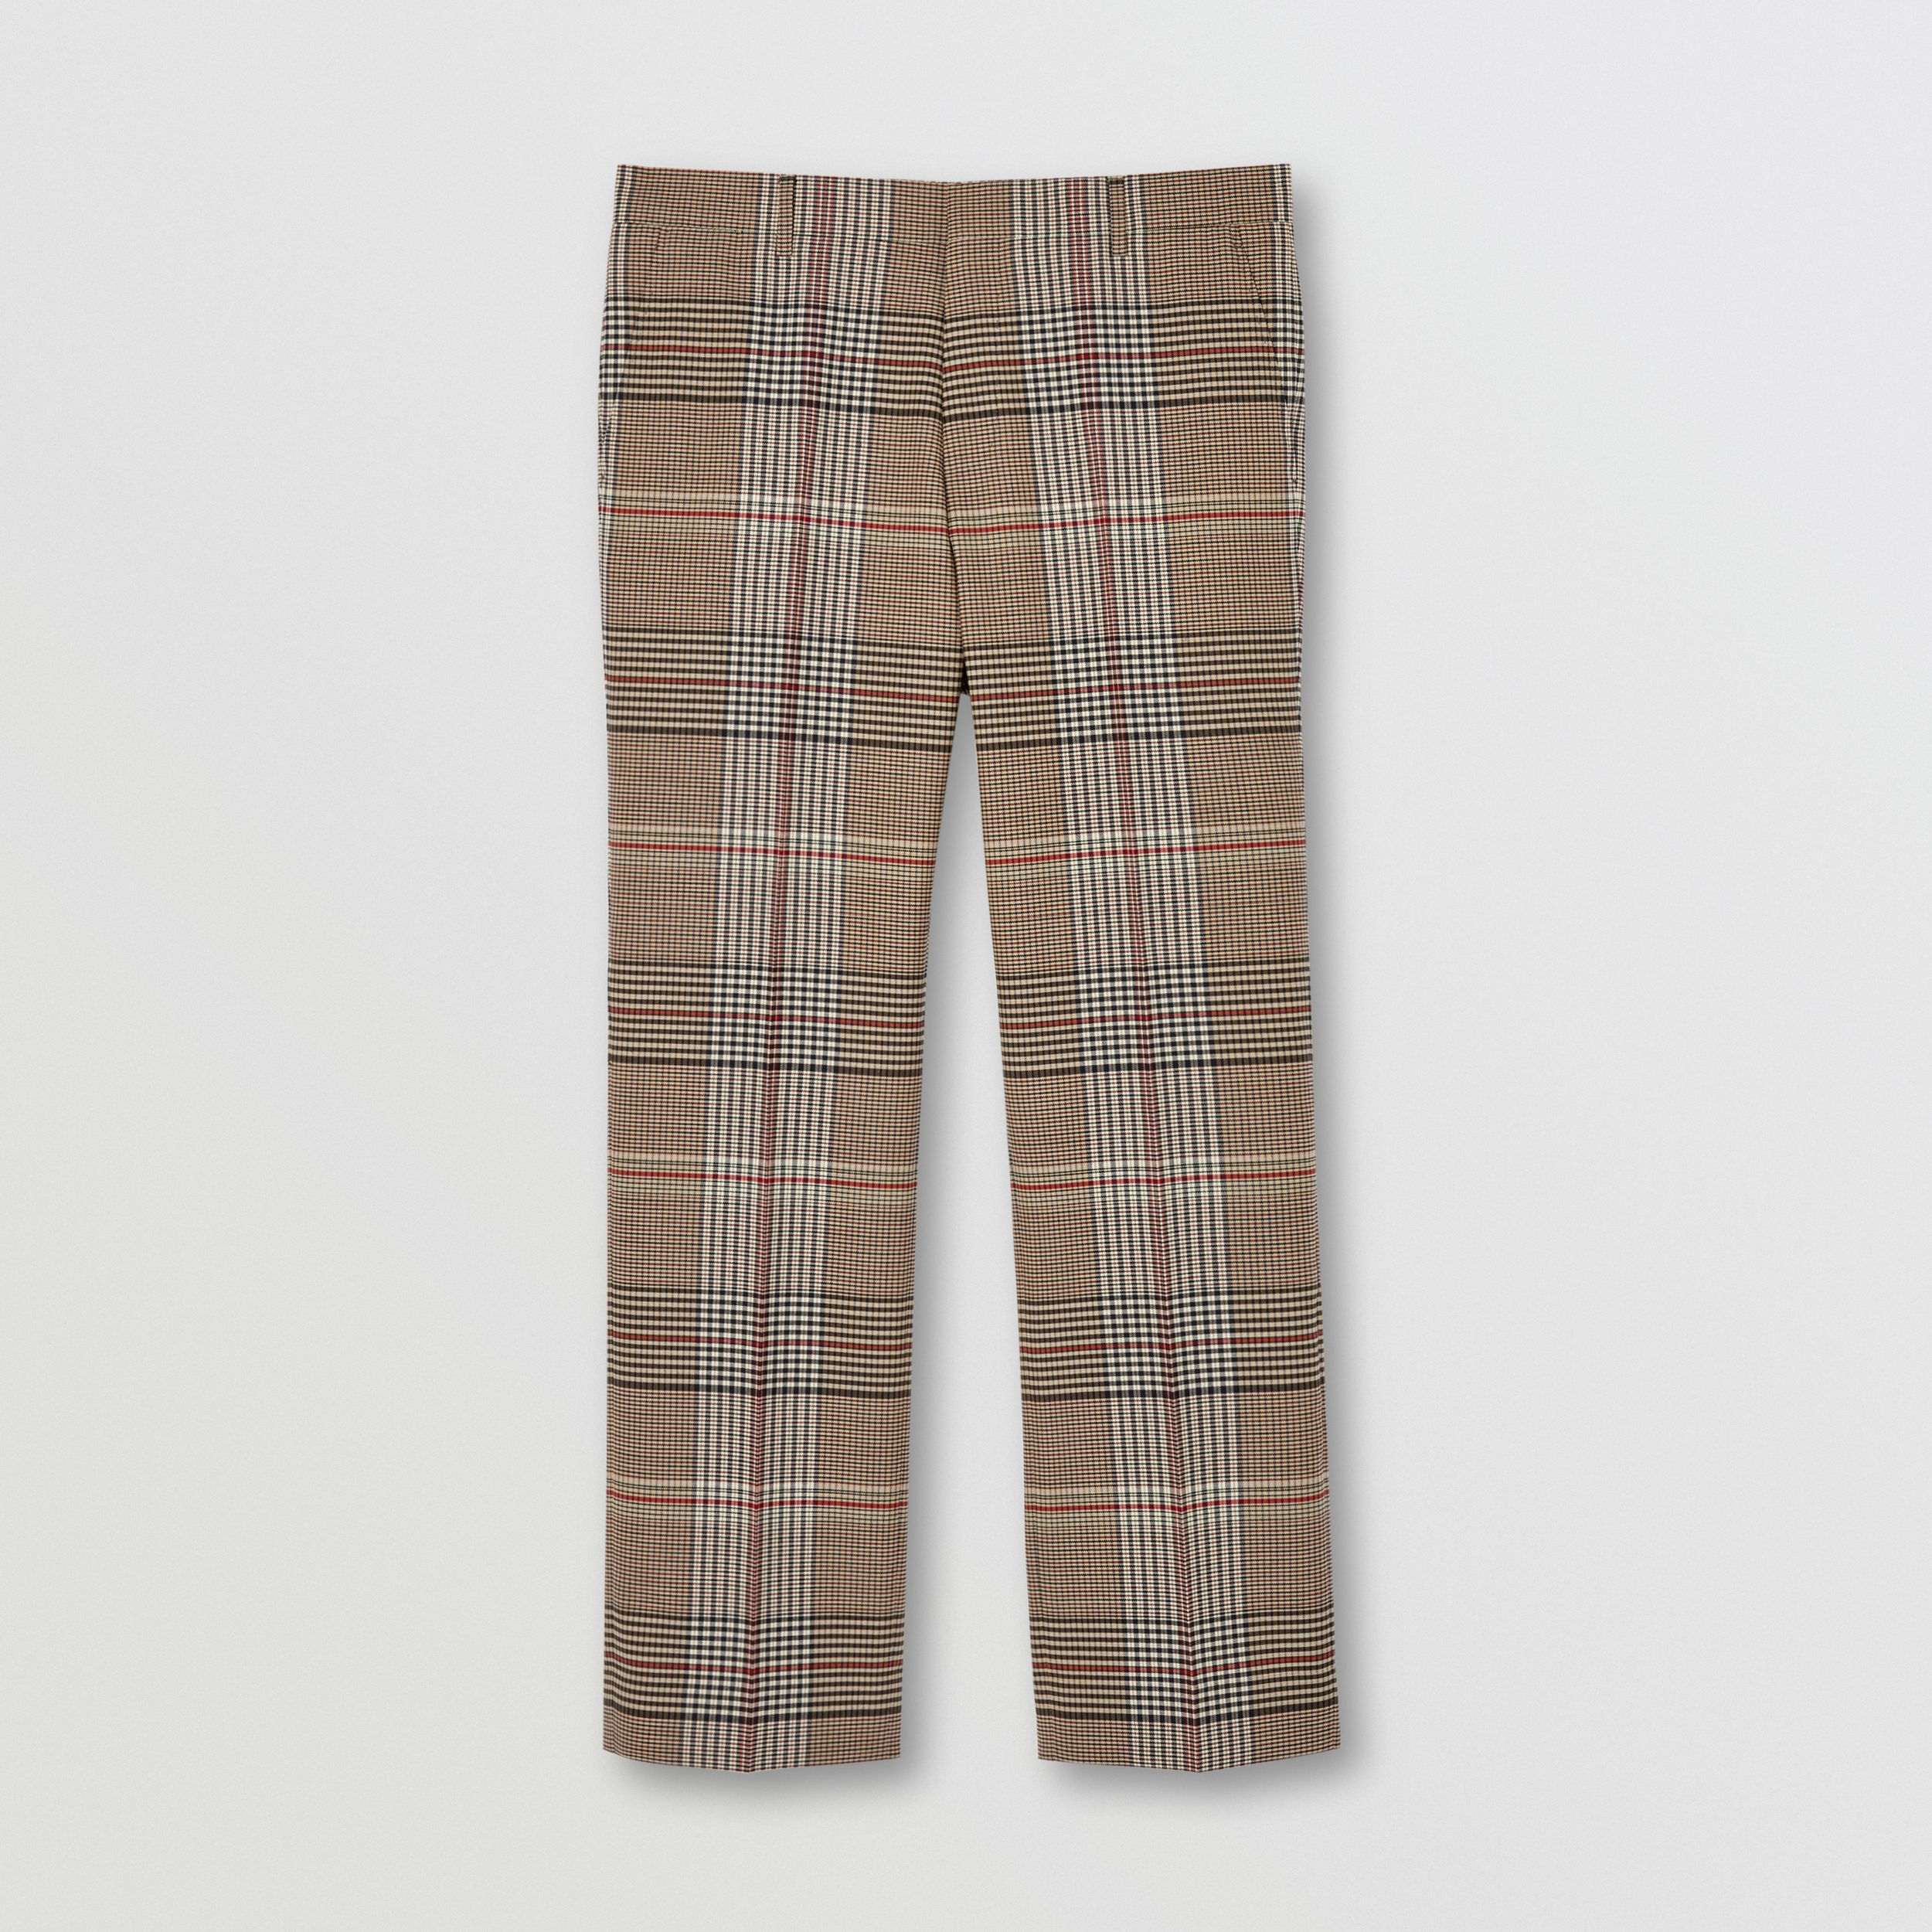 Check Wool Tailored Trousers in Beige | Burberry - 4